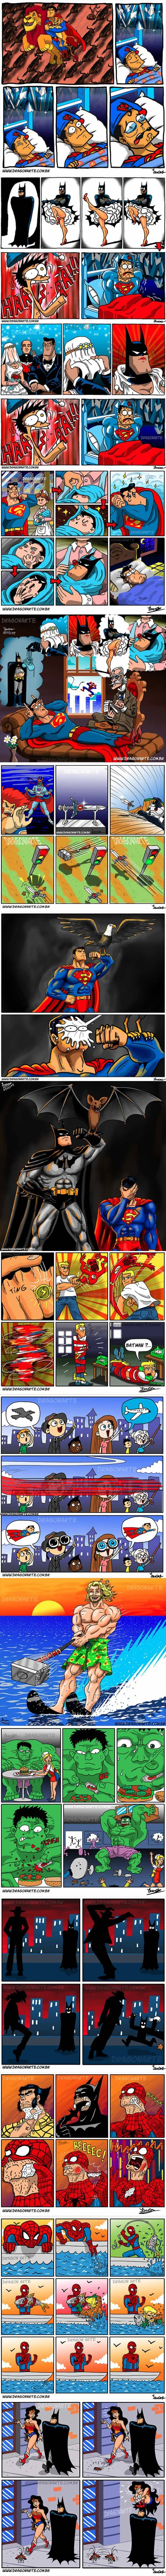 The Funniest Superhero Comics Collection (Part 2):